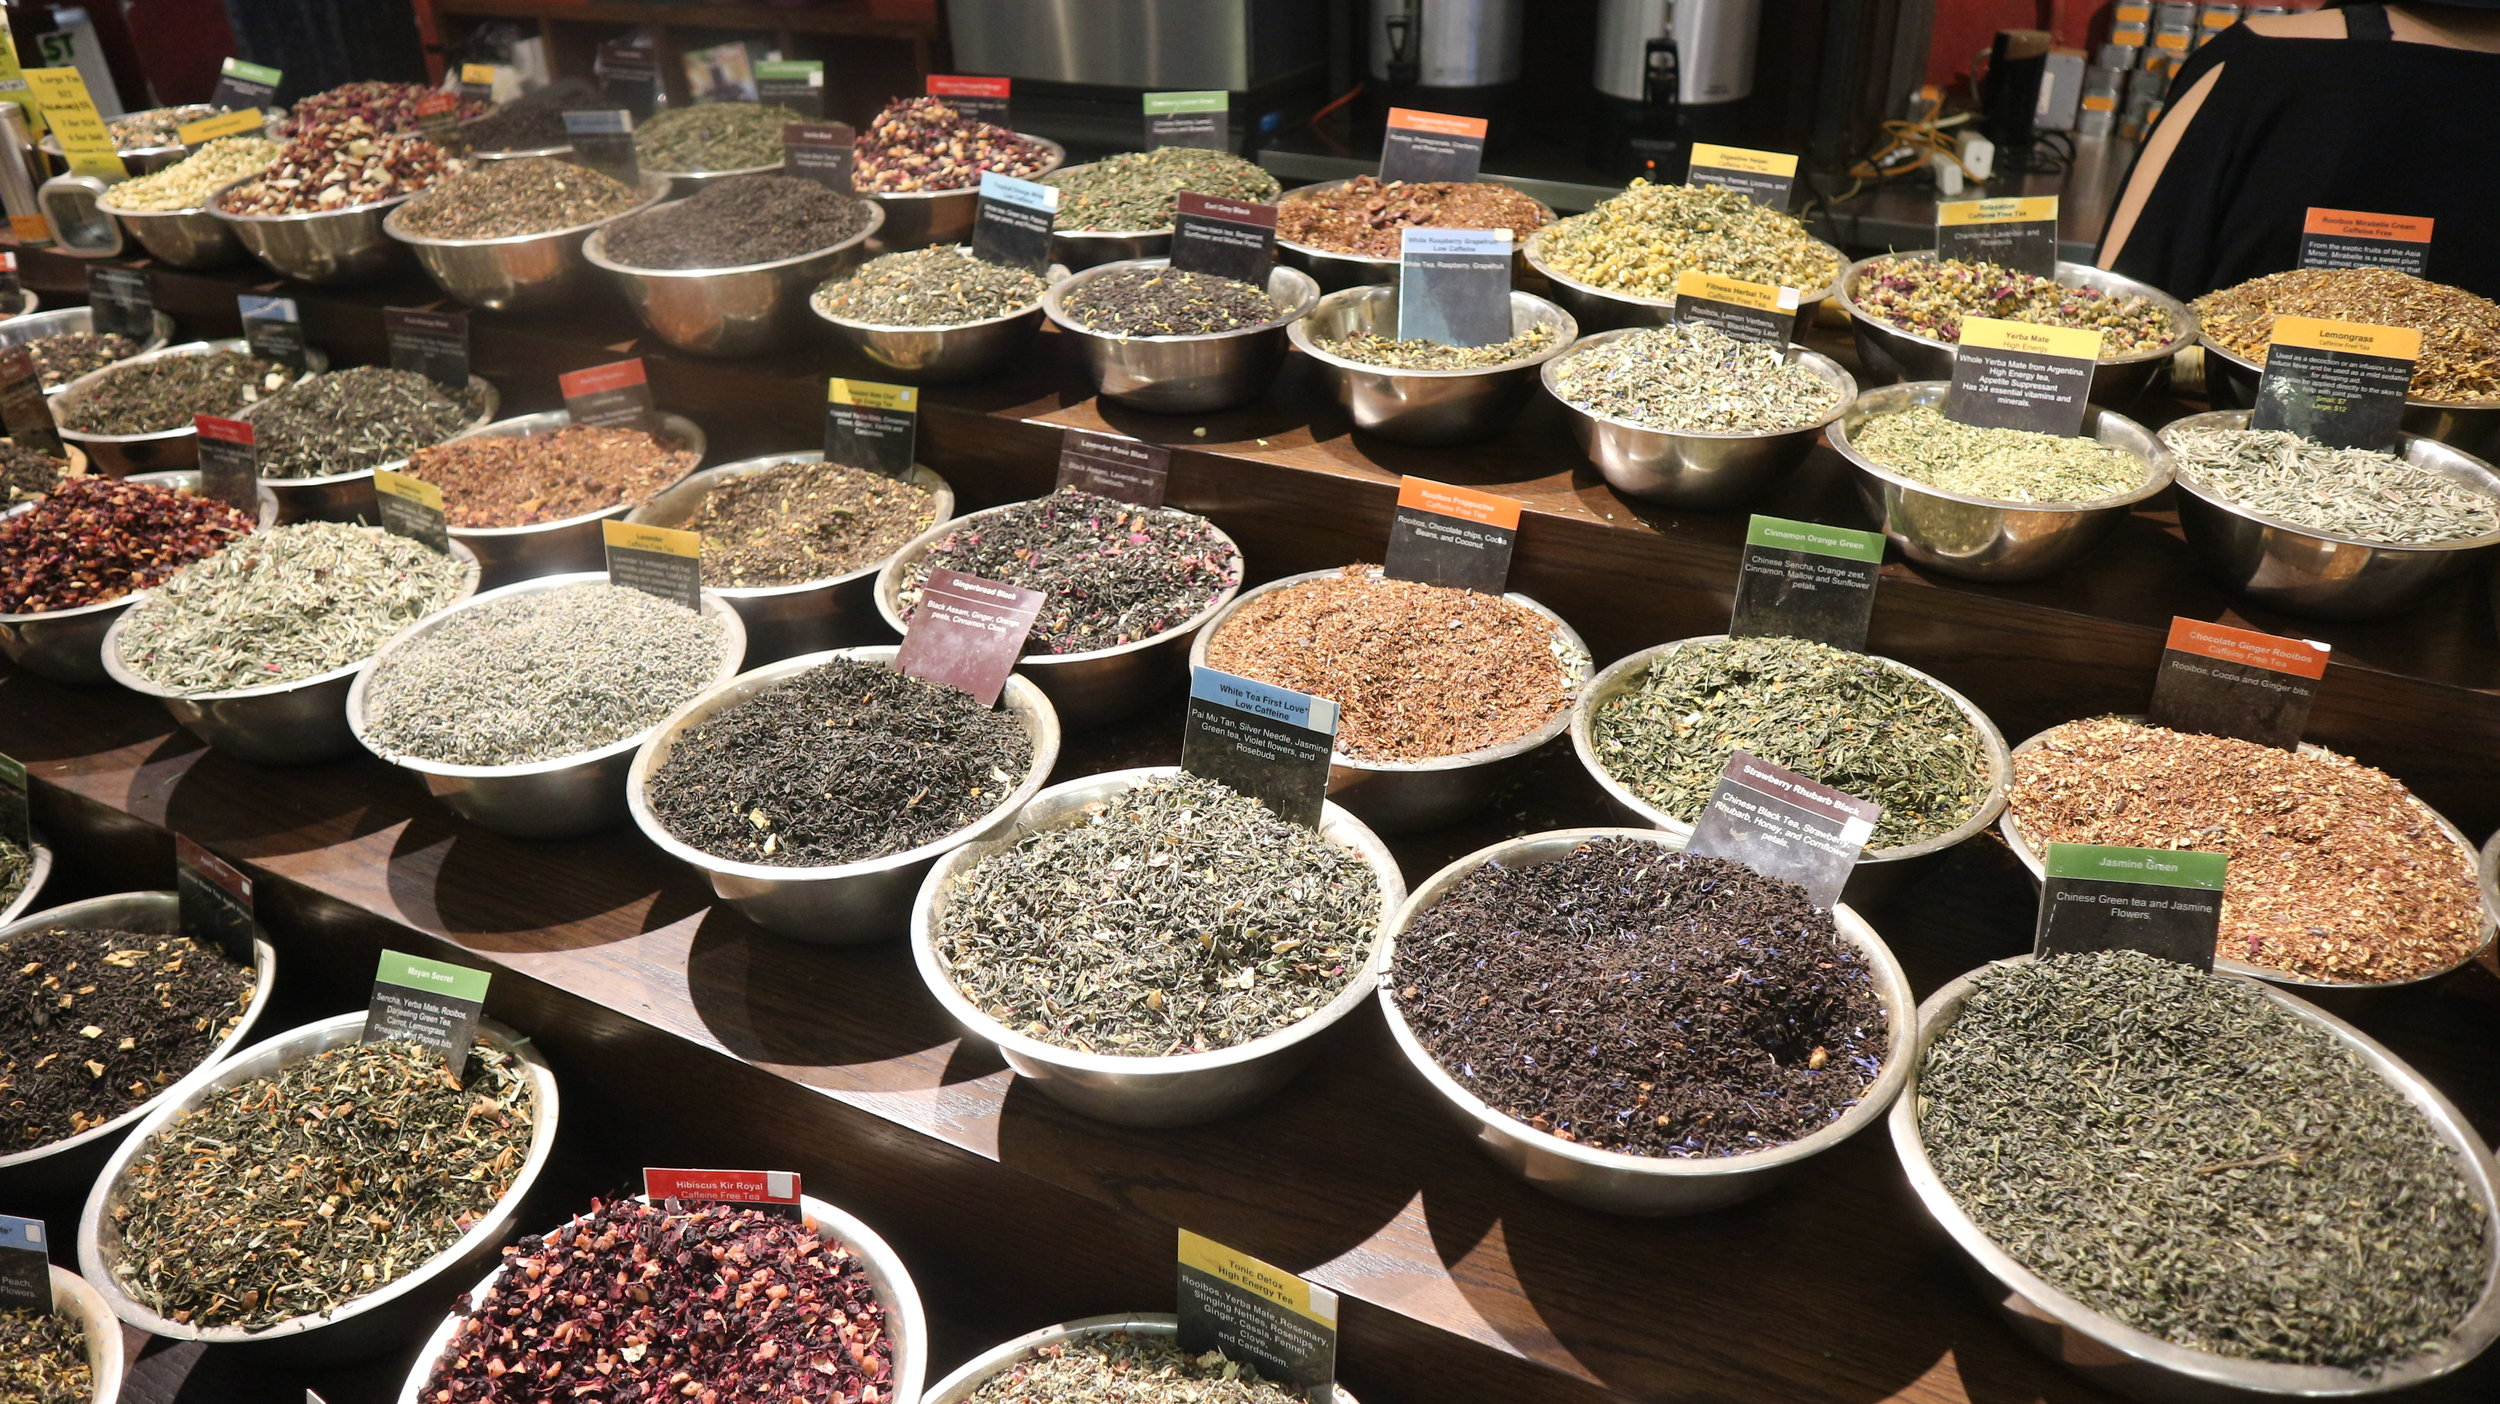 Spice & Teas at Chelsea Market